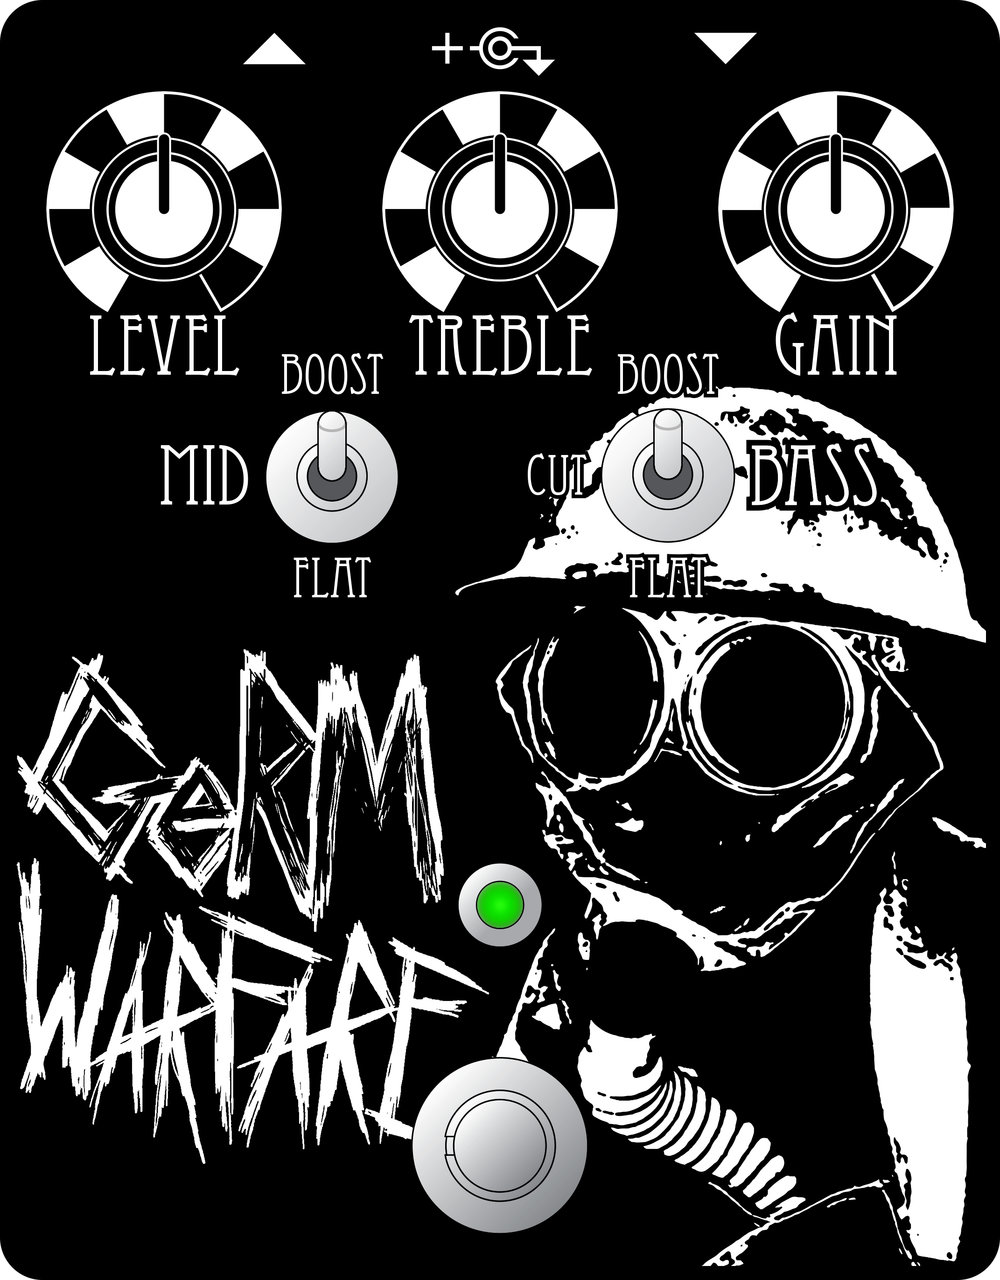 Germ Warfare - Pedal Images.jpg